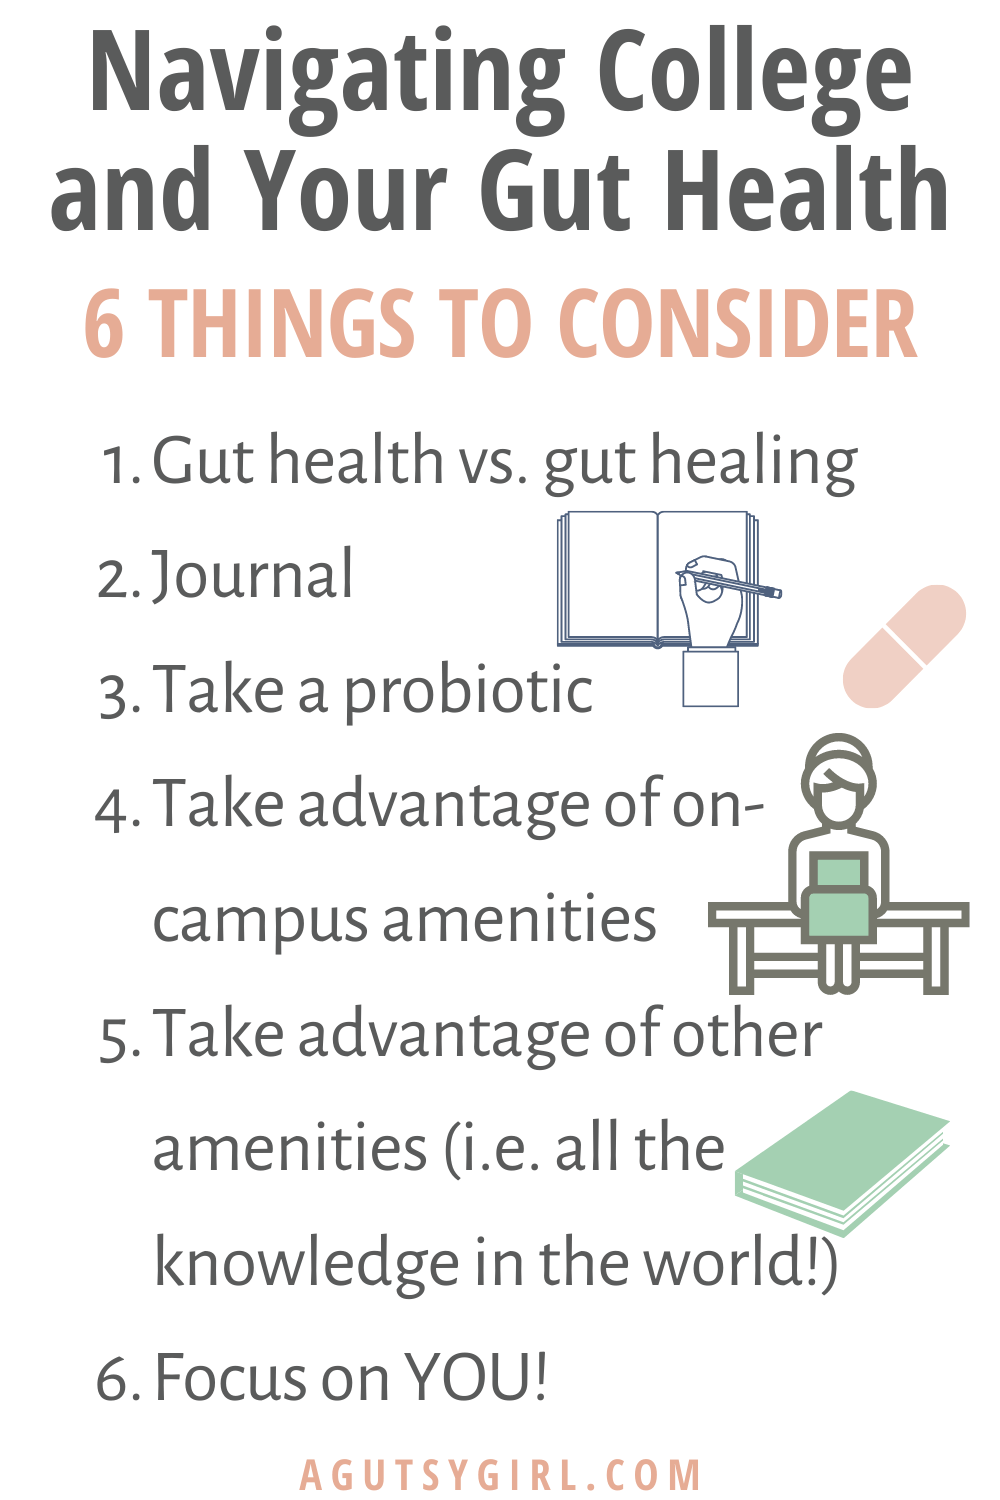 Navigating College A College Girl's Master Guide to Gut Health agutsygirl.com #guthealth #guthealing #college